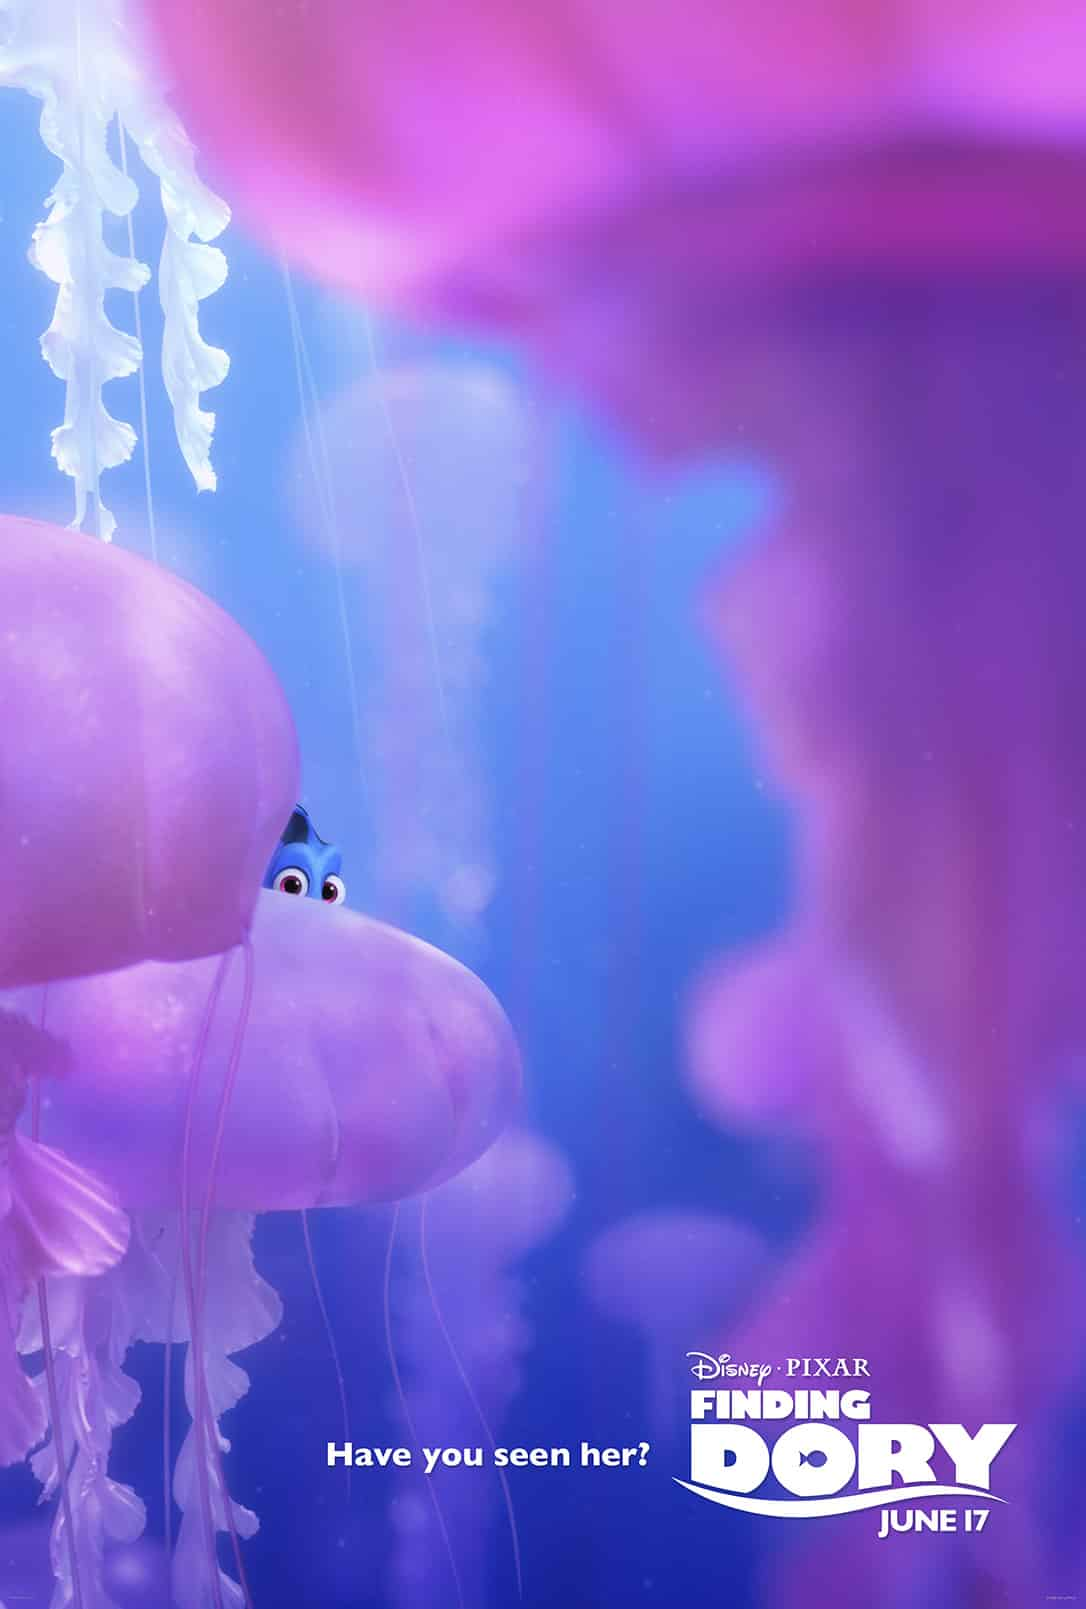 Finding Dory will be in theaters on June 17. #FindingDory